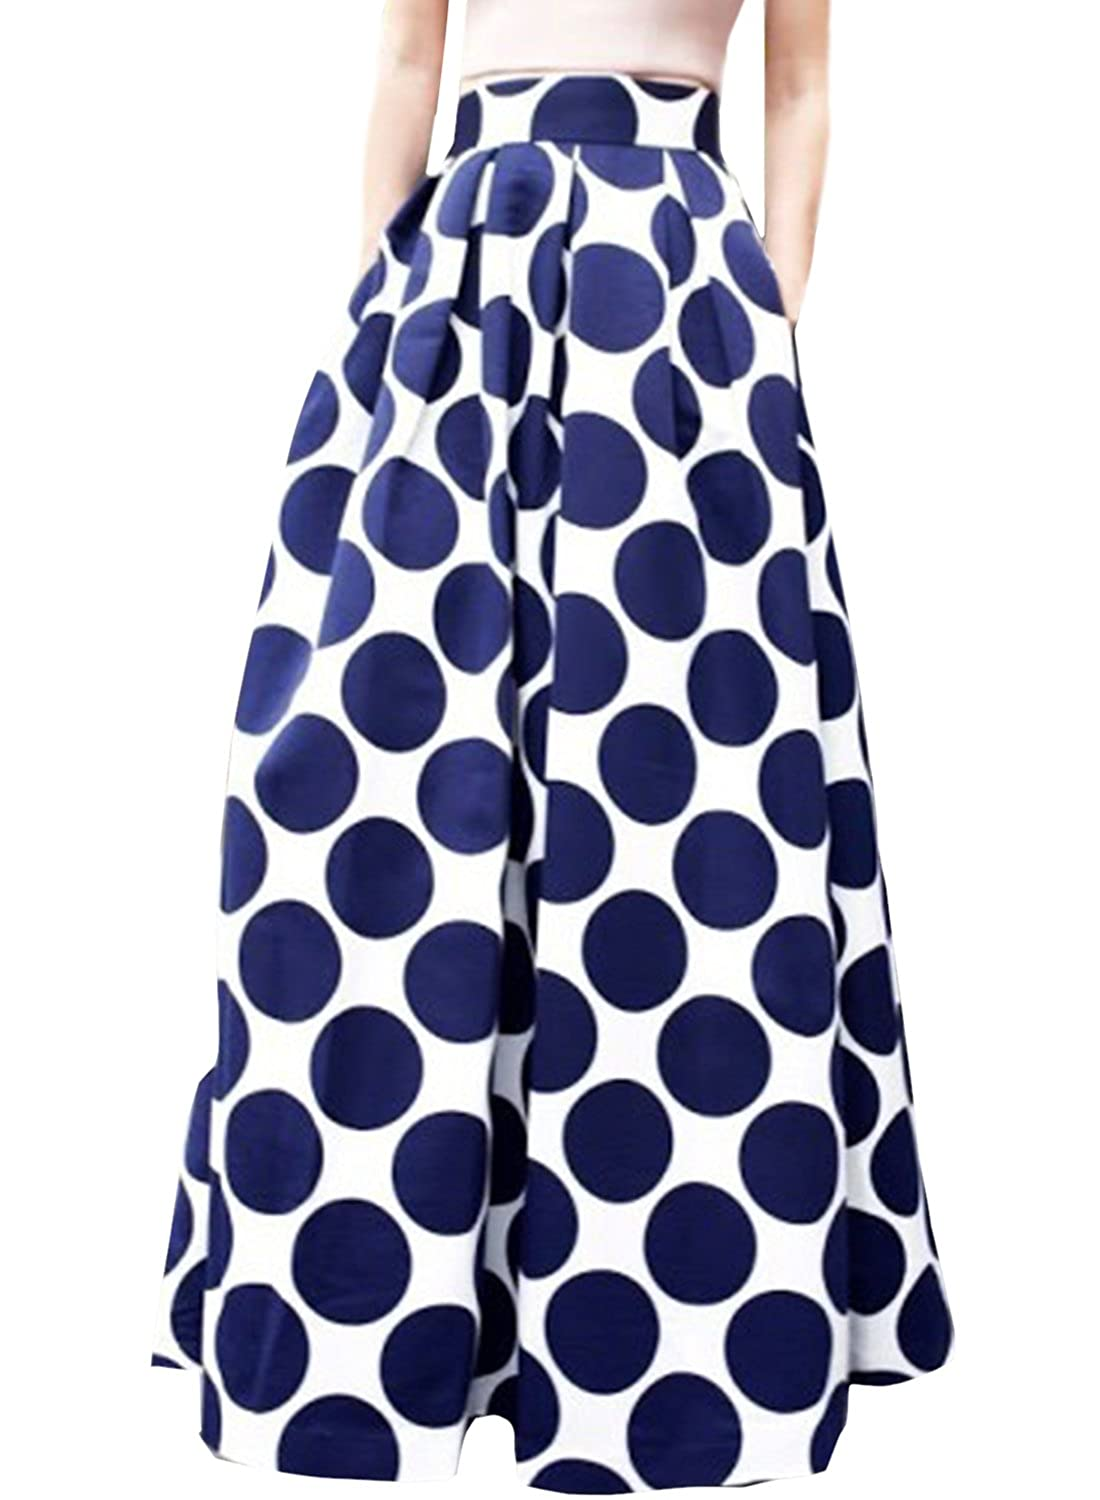 ACHICGIRL Women's Color Block Polka Dot Print High Waist Skirt